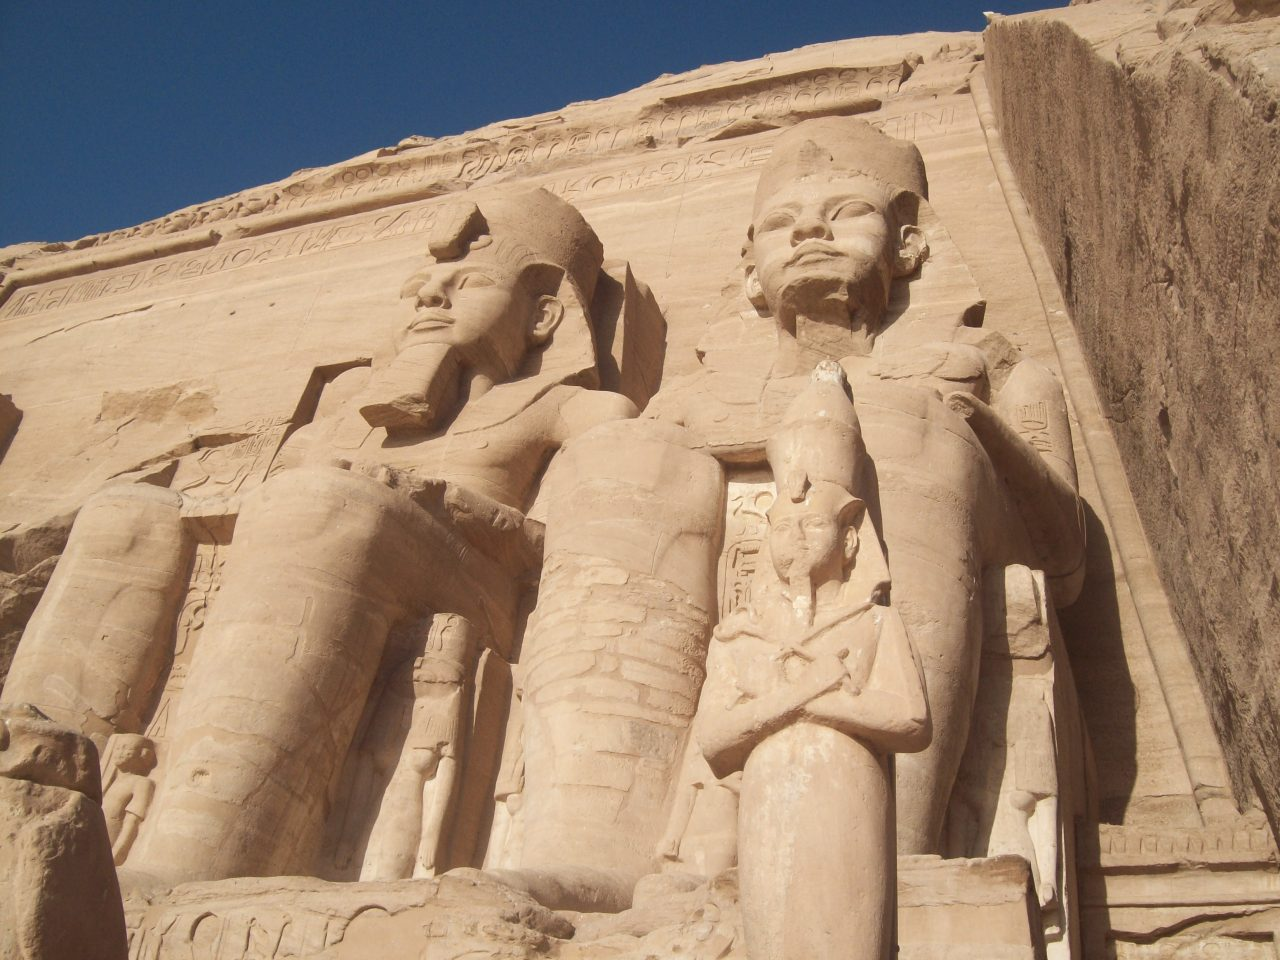 Egypt operates 171 flights, reopens 5 museums and 8 archaeological sites